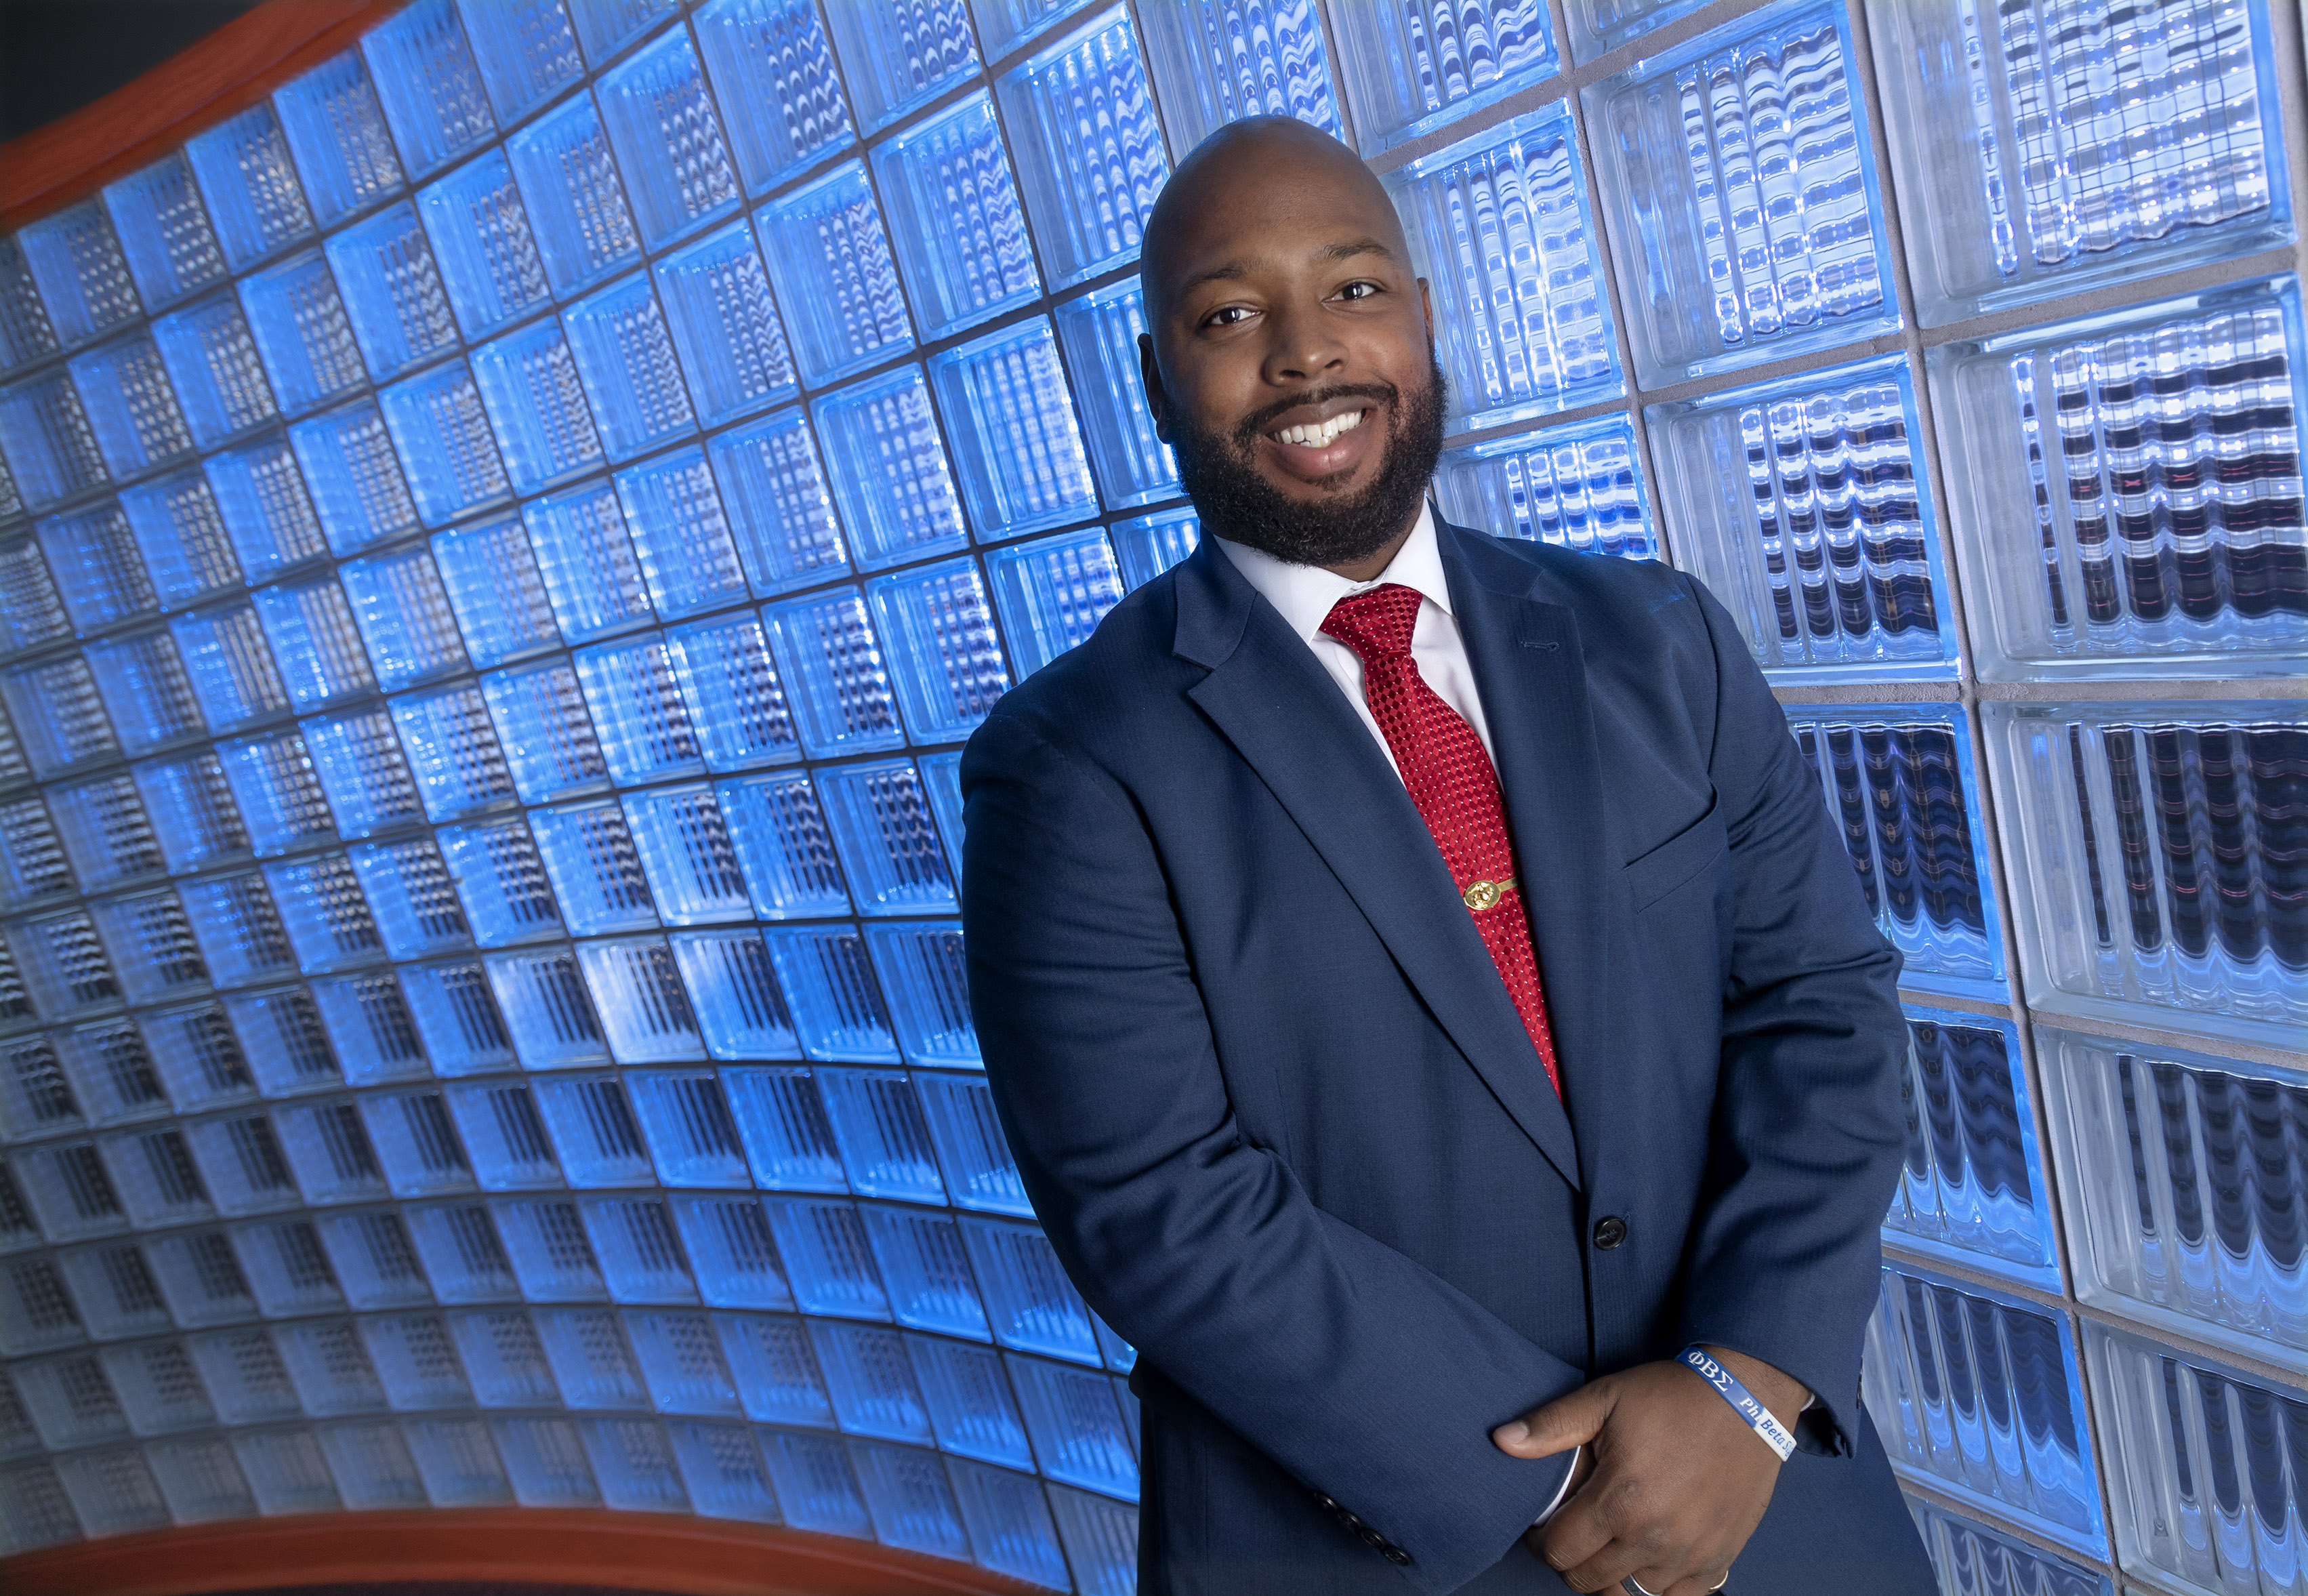 Jerome Wilson is a 2020 graduate of the William H. Bowen School of Law and the Clinton School of Public Service.